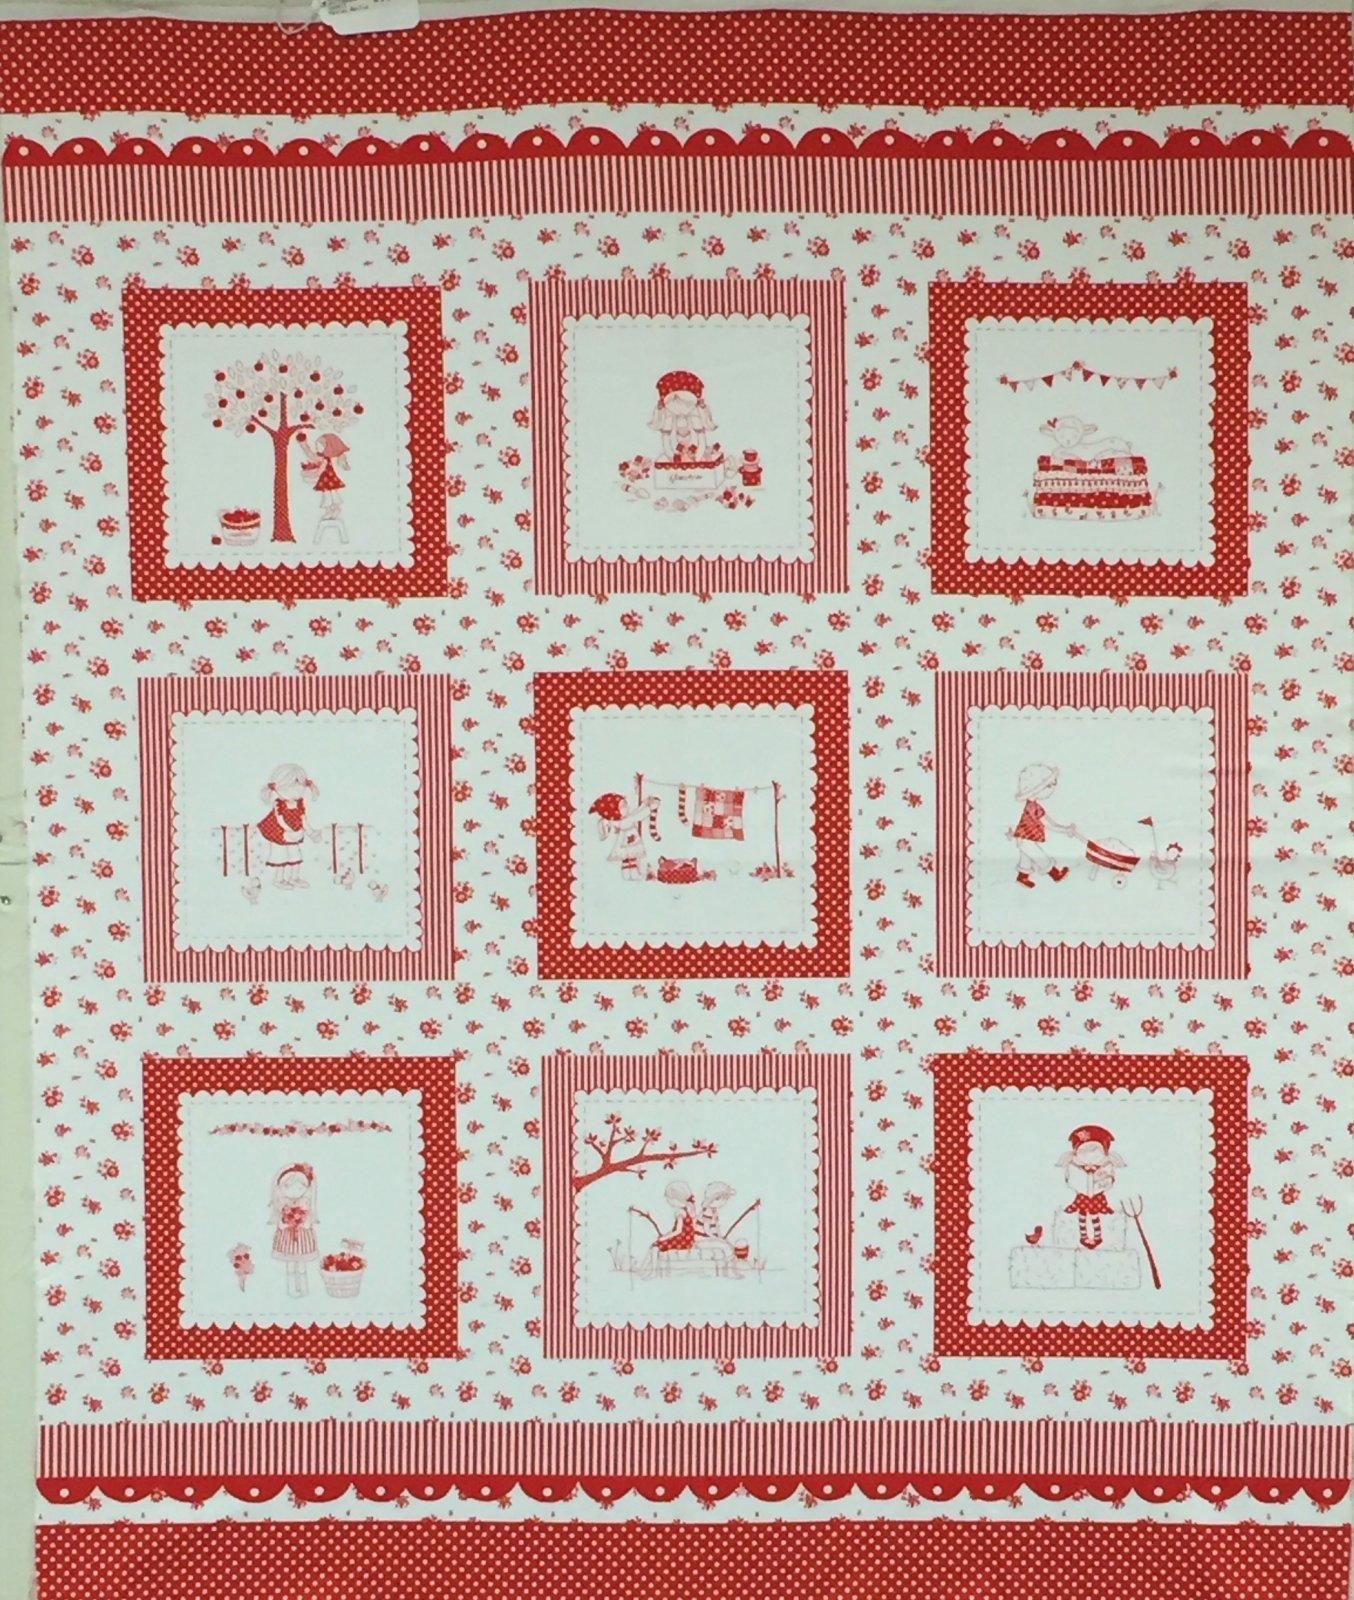 THE SIMPLE LIFE PANEL-RED